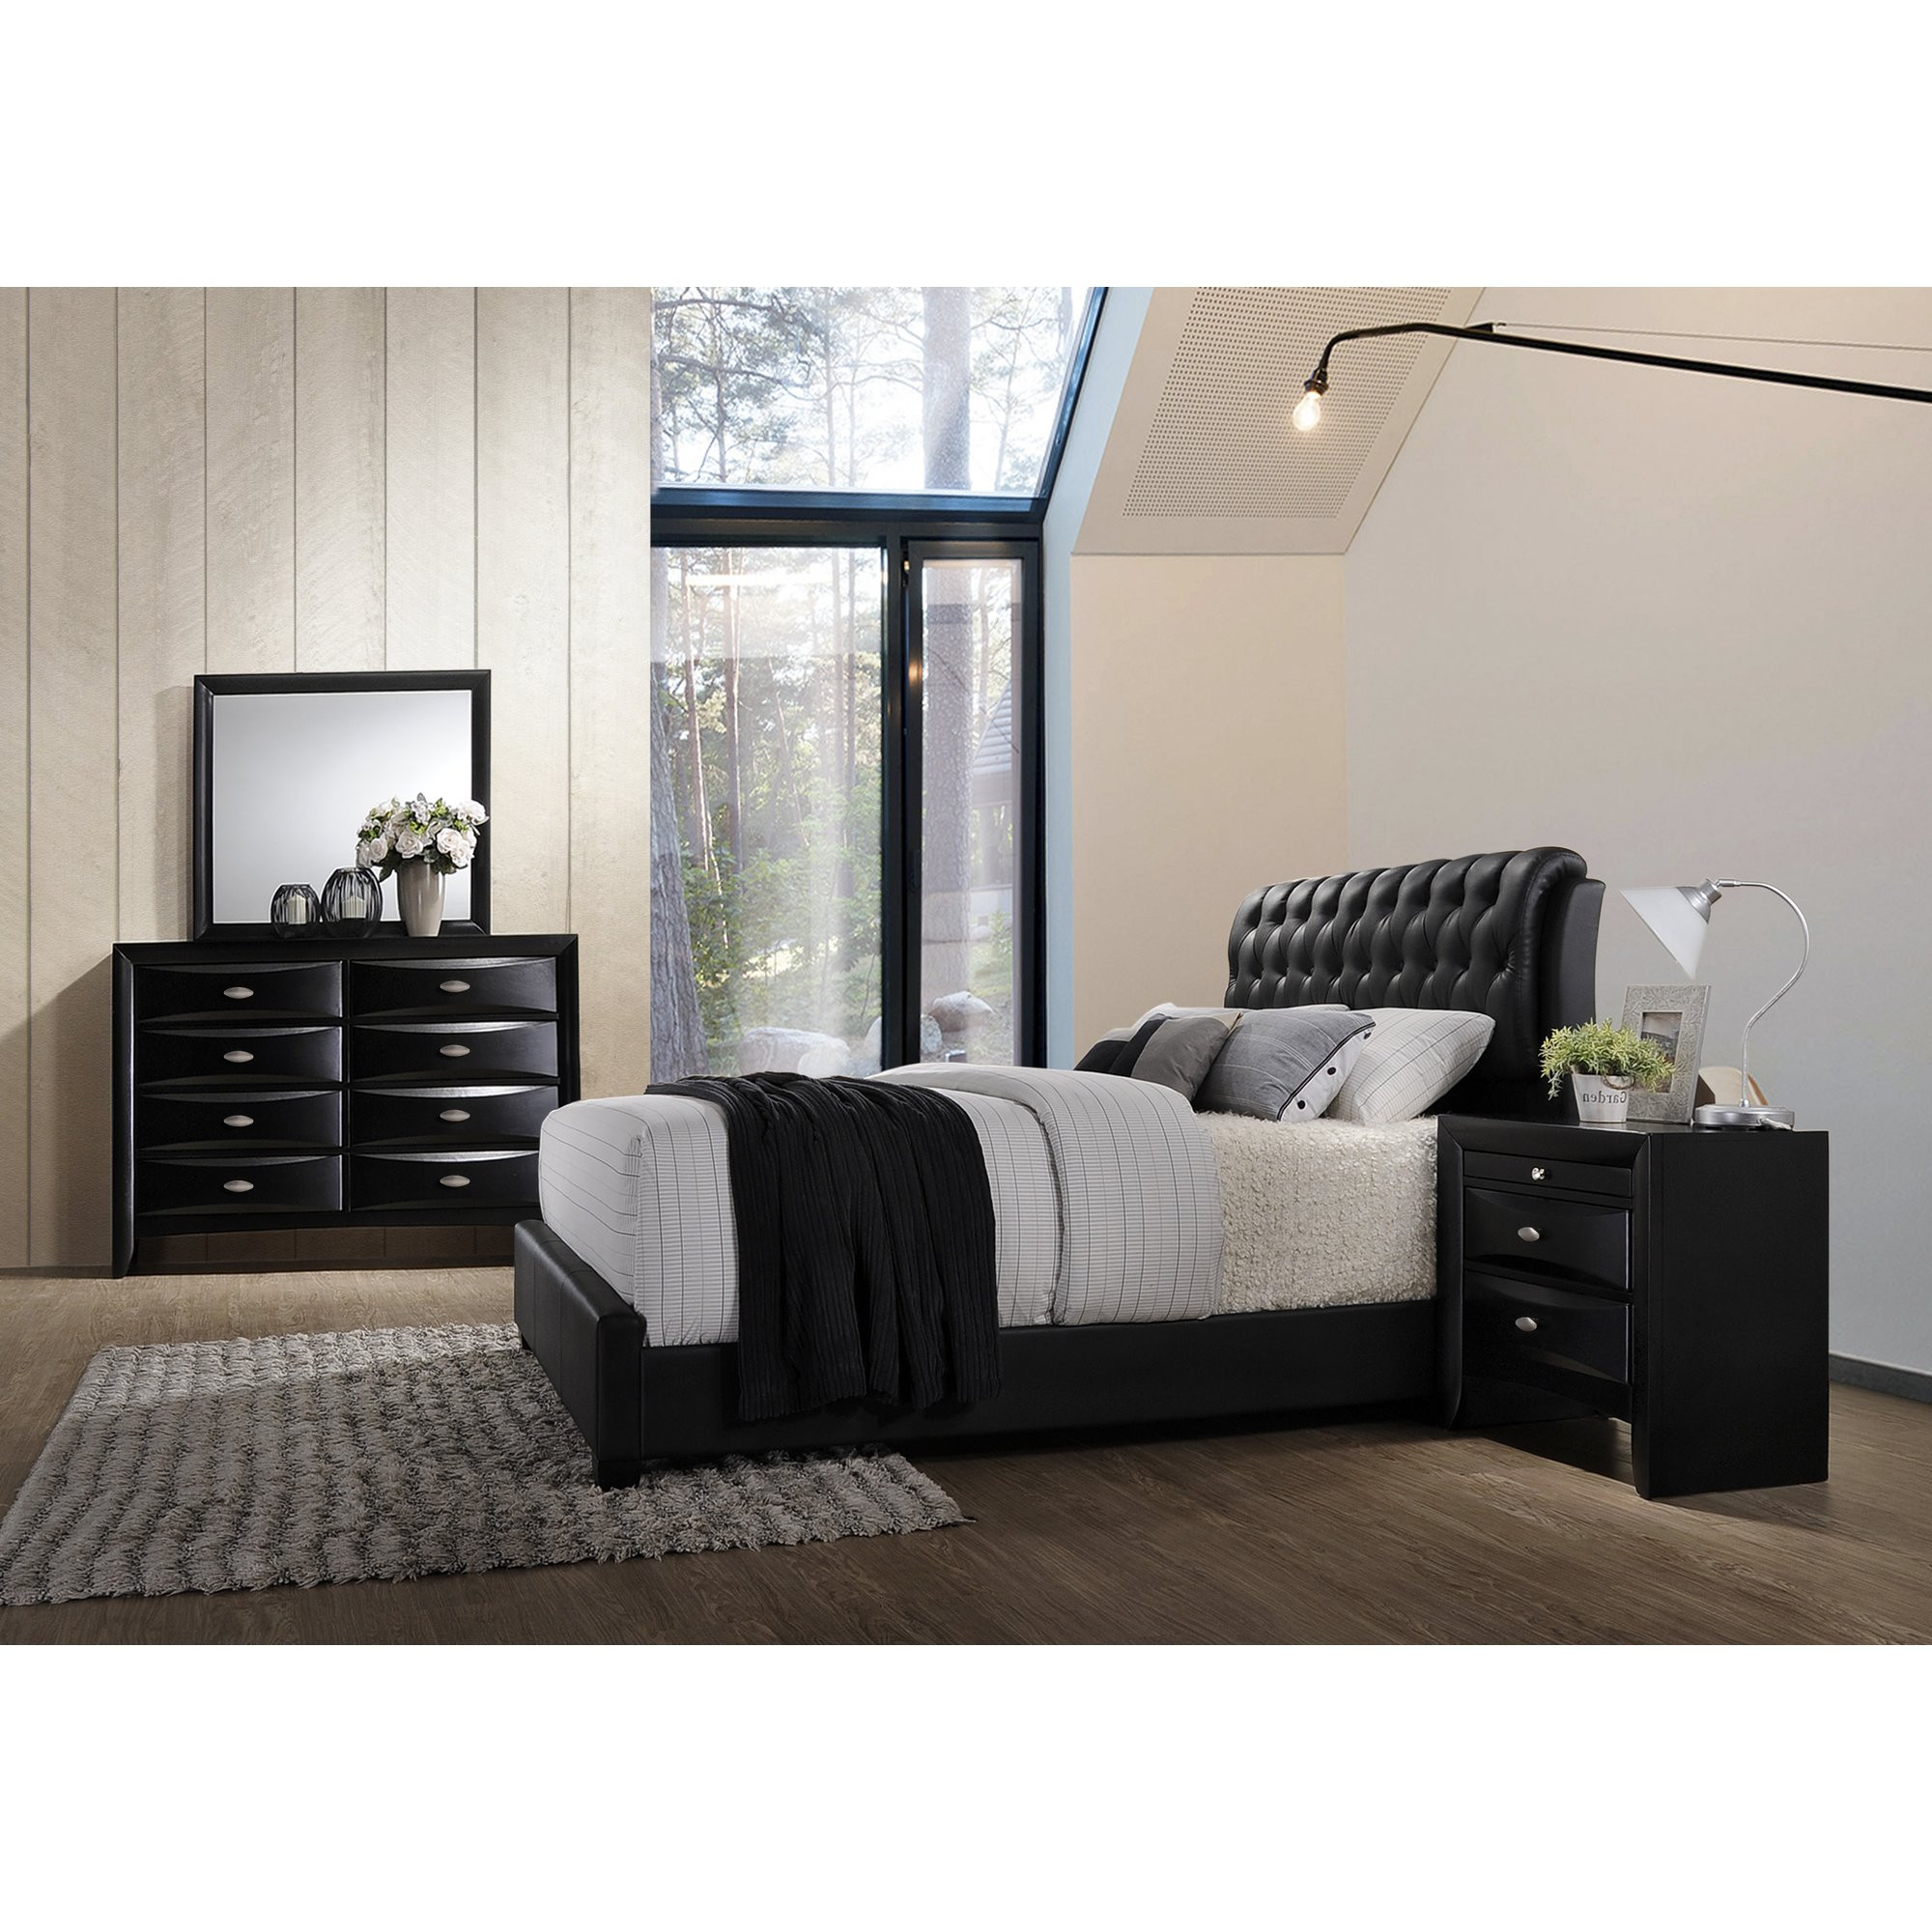 Best ideas about Wayfair Bedroom Sets . Save or Pin Roundhill Furniture Blemerey 4 Piece Bedroom Set Now.